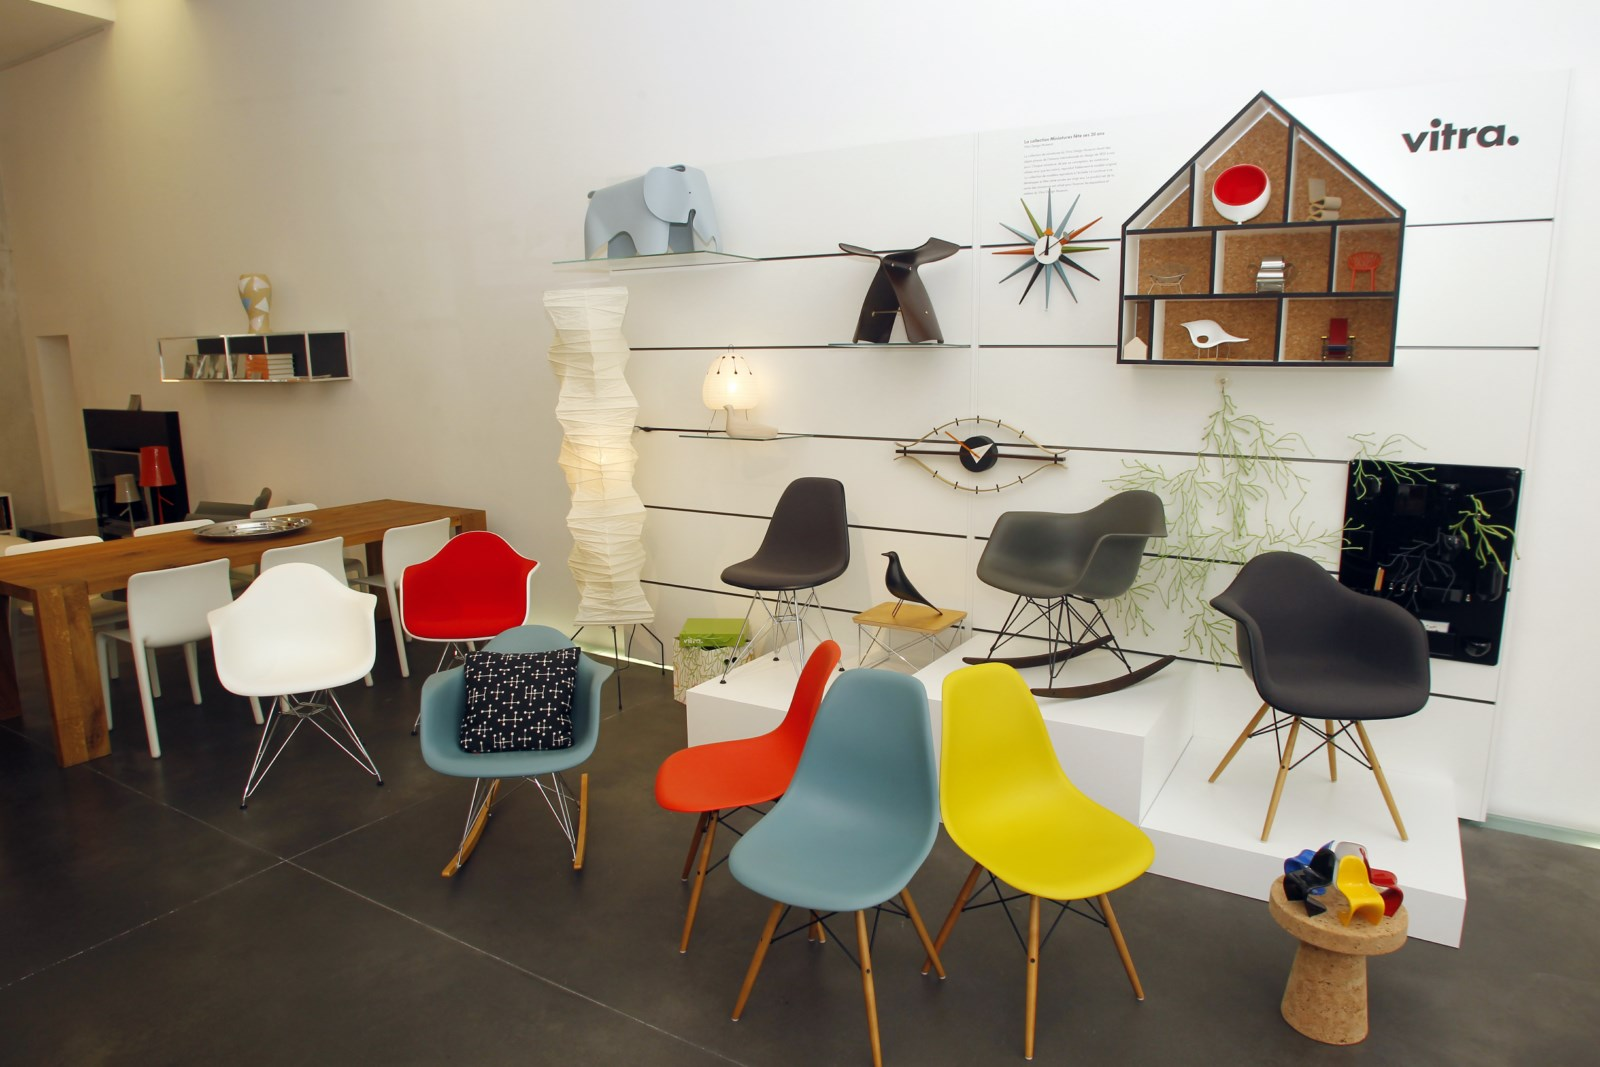 Magasin de mobilier meubles design marseille centre ville for Site mobilier design